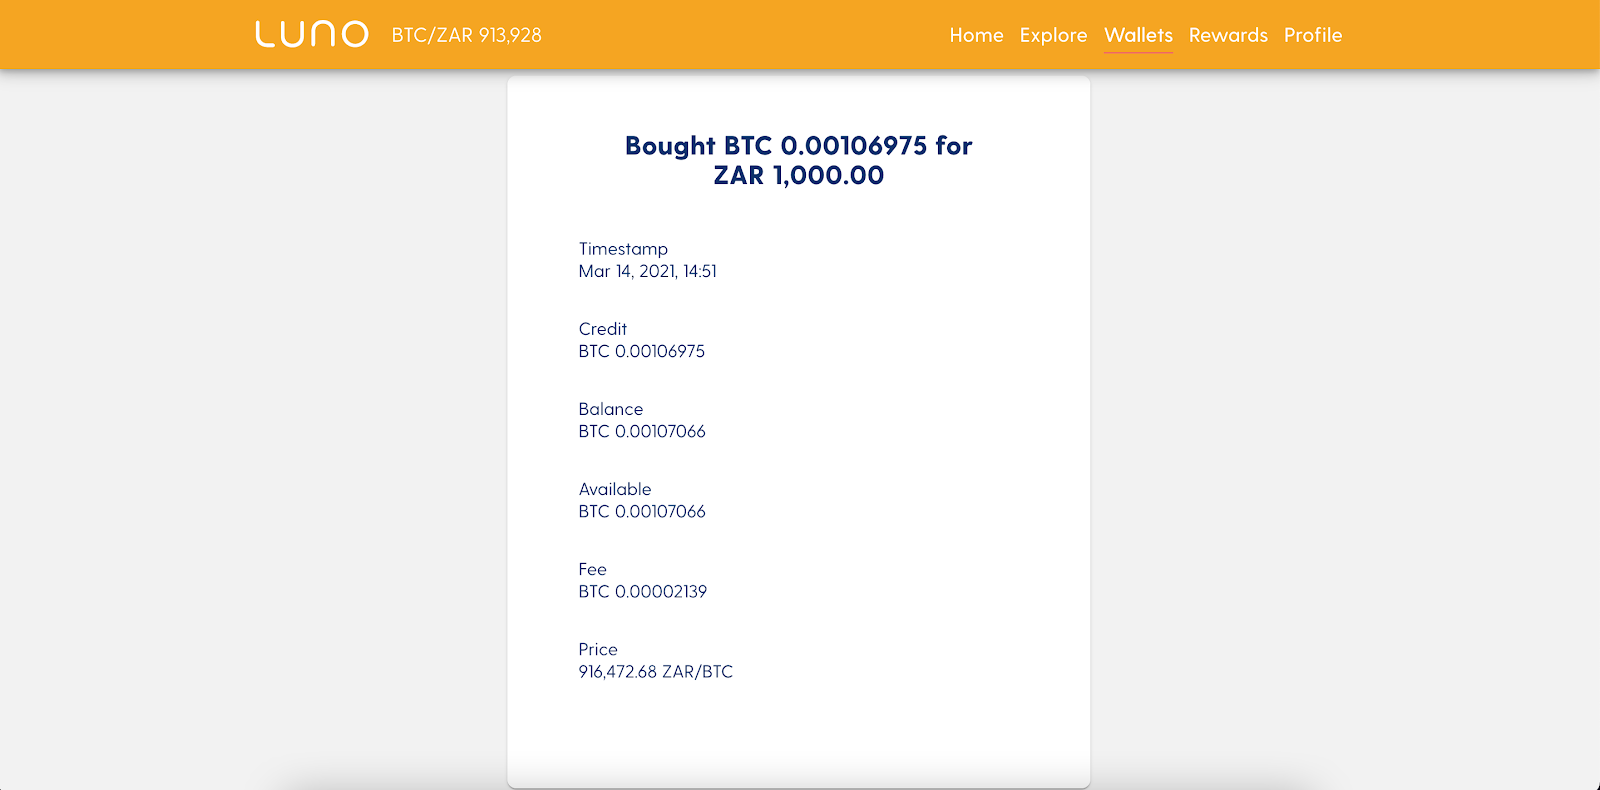 Screenshot of the BTC purchase order from Luno.